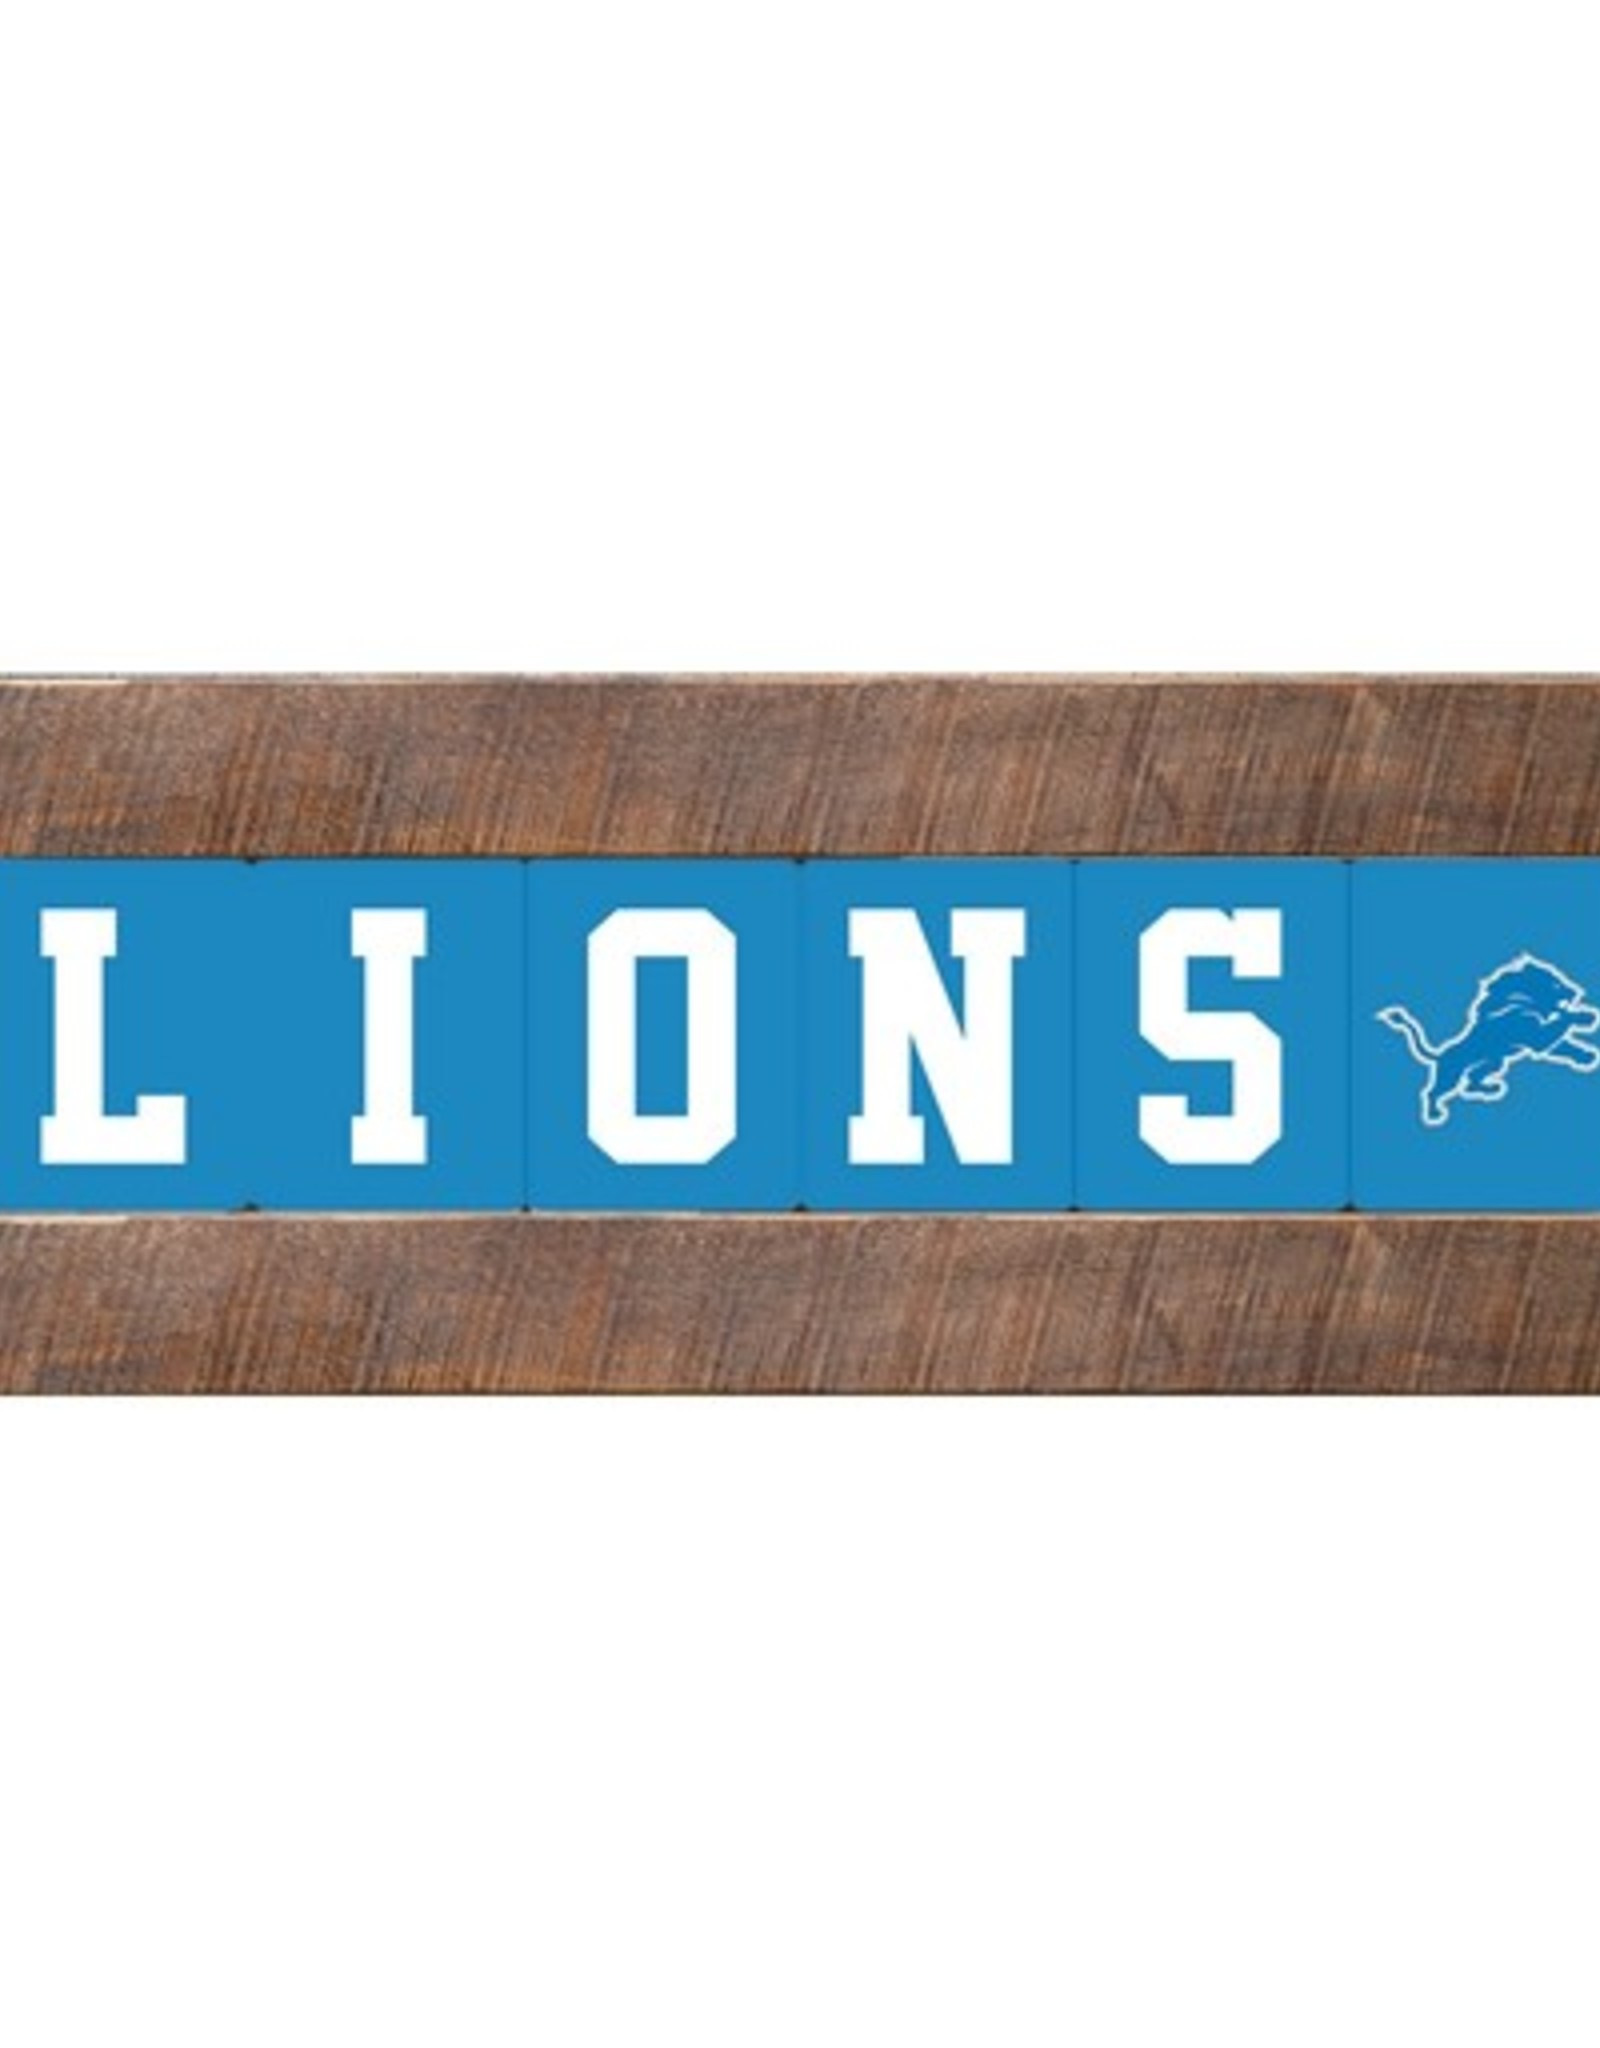 RUSTIC MARLIN Detriot Lions Marlin Classic Wood Sign